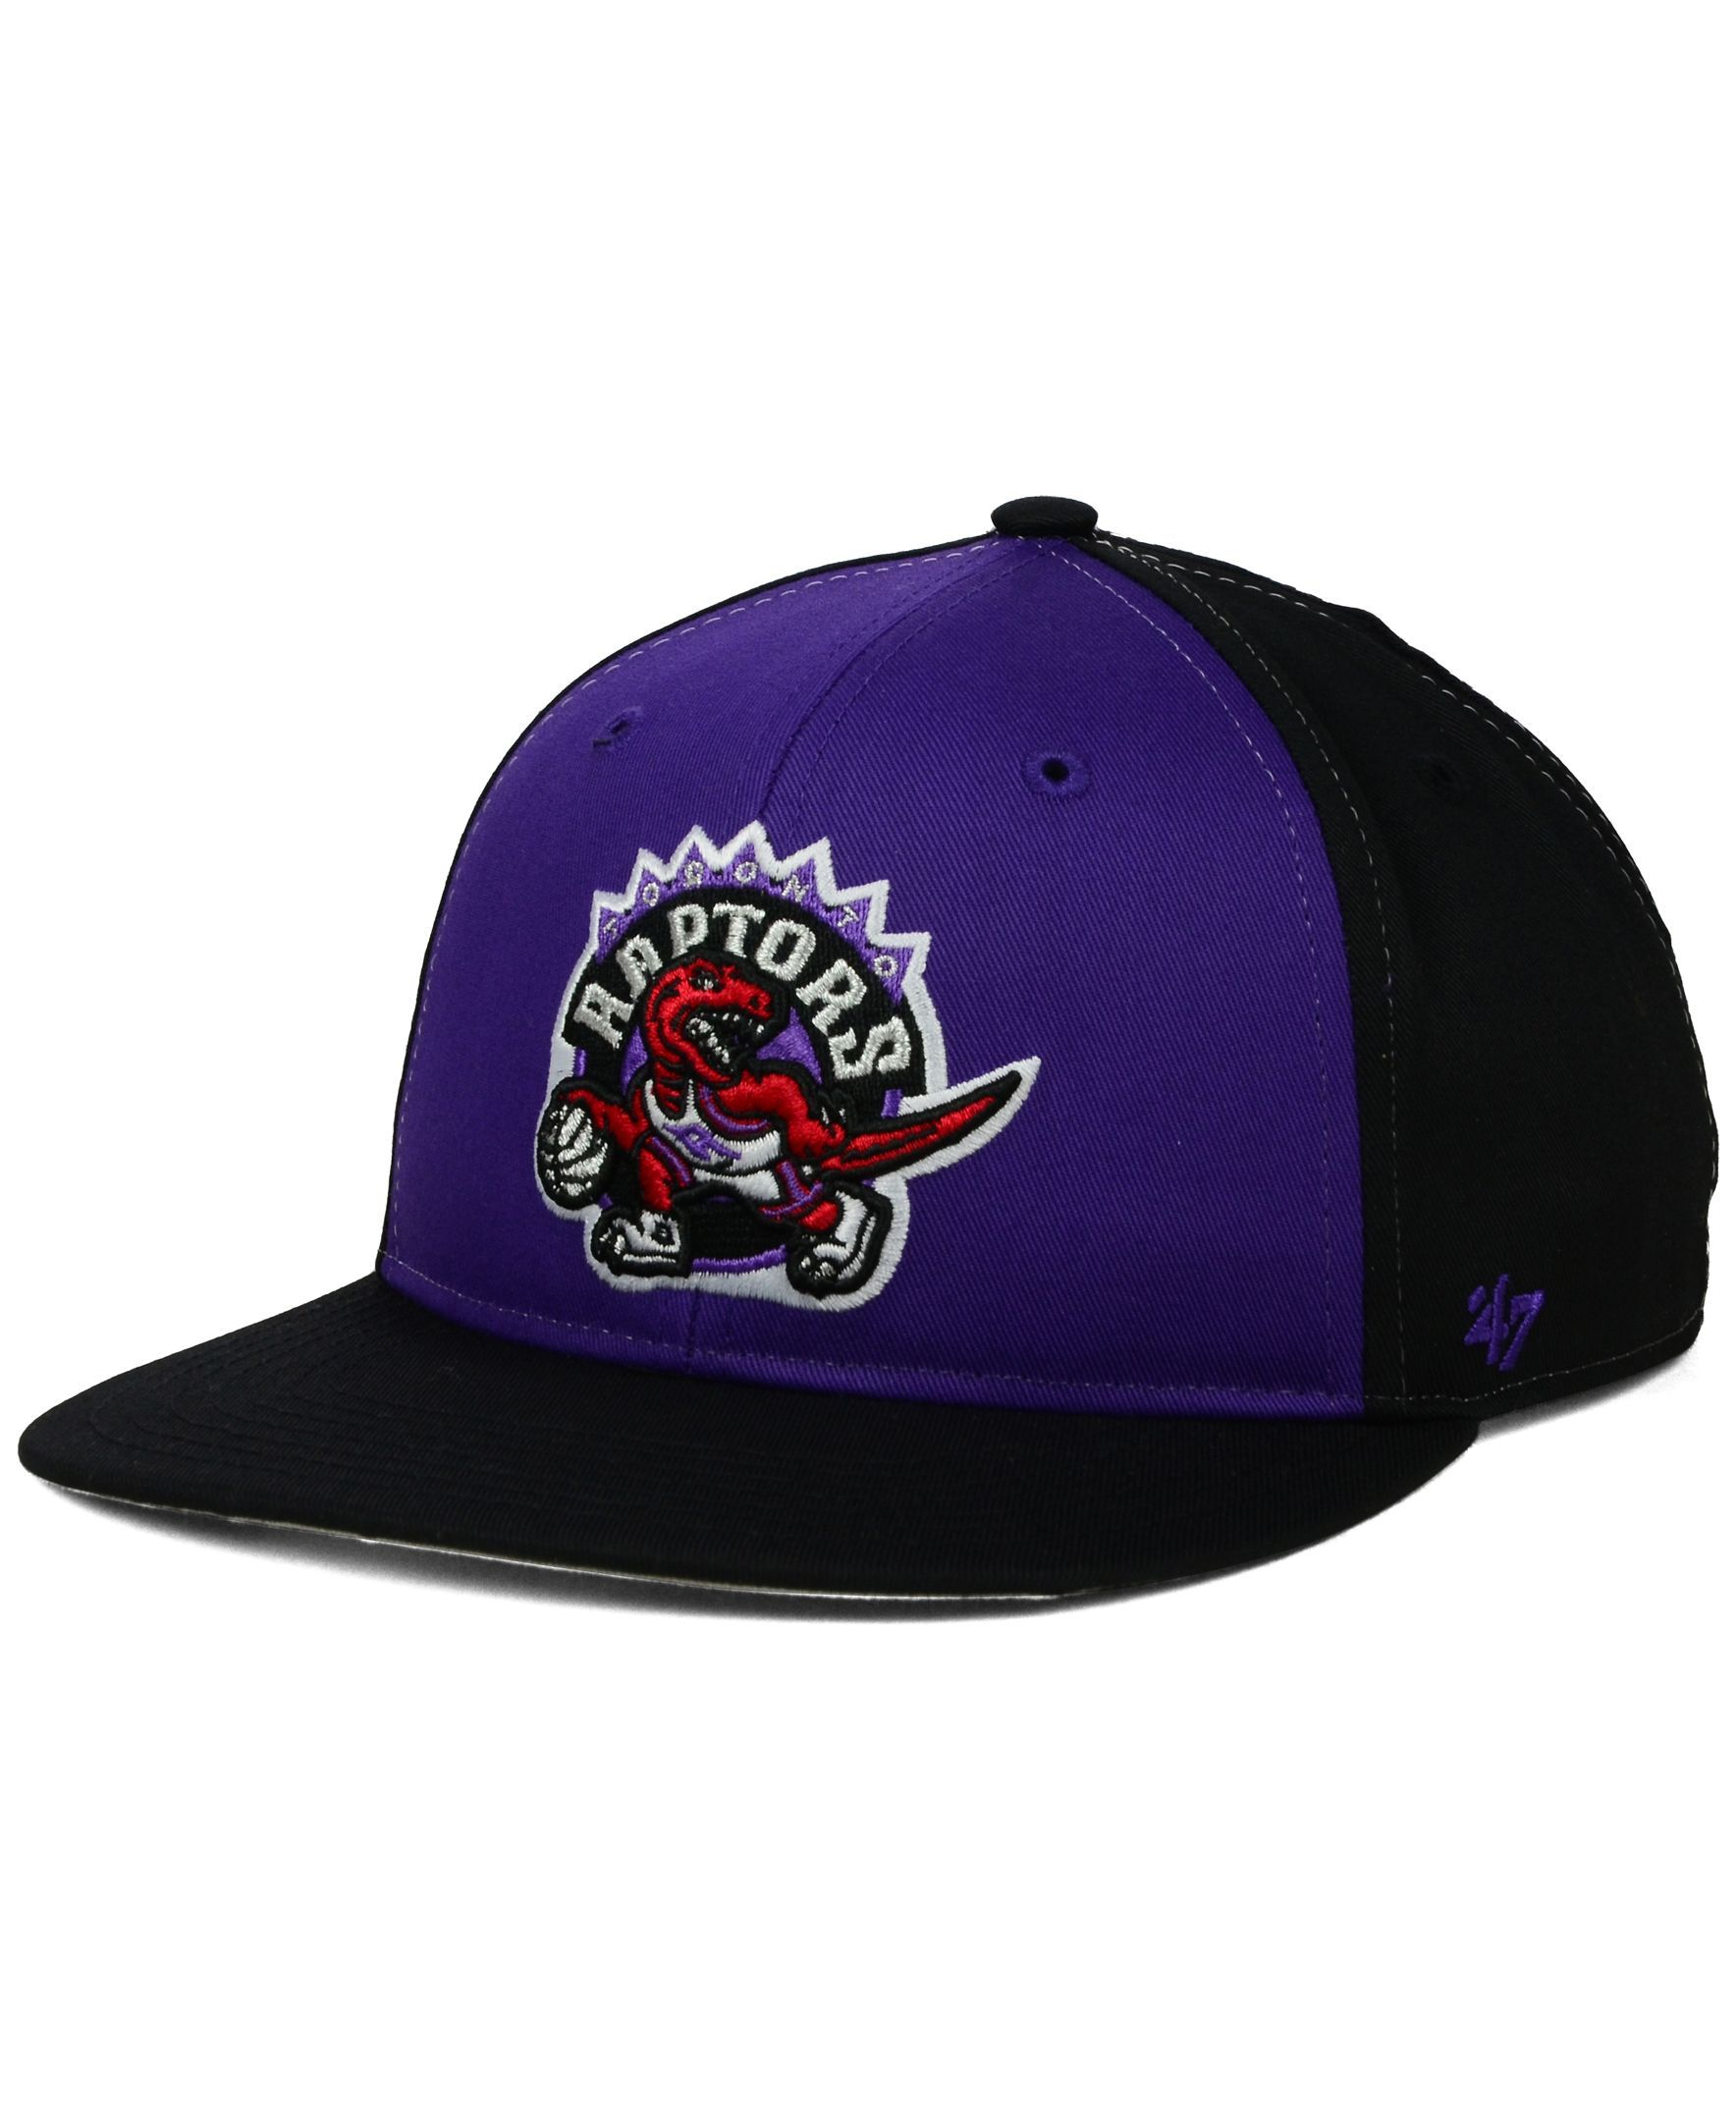 c111c9bc218 best price 47 brand kids toronto raptors kinnick snapback cap sports fan  shop by lids men